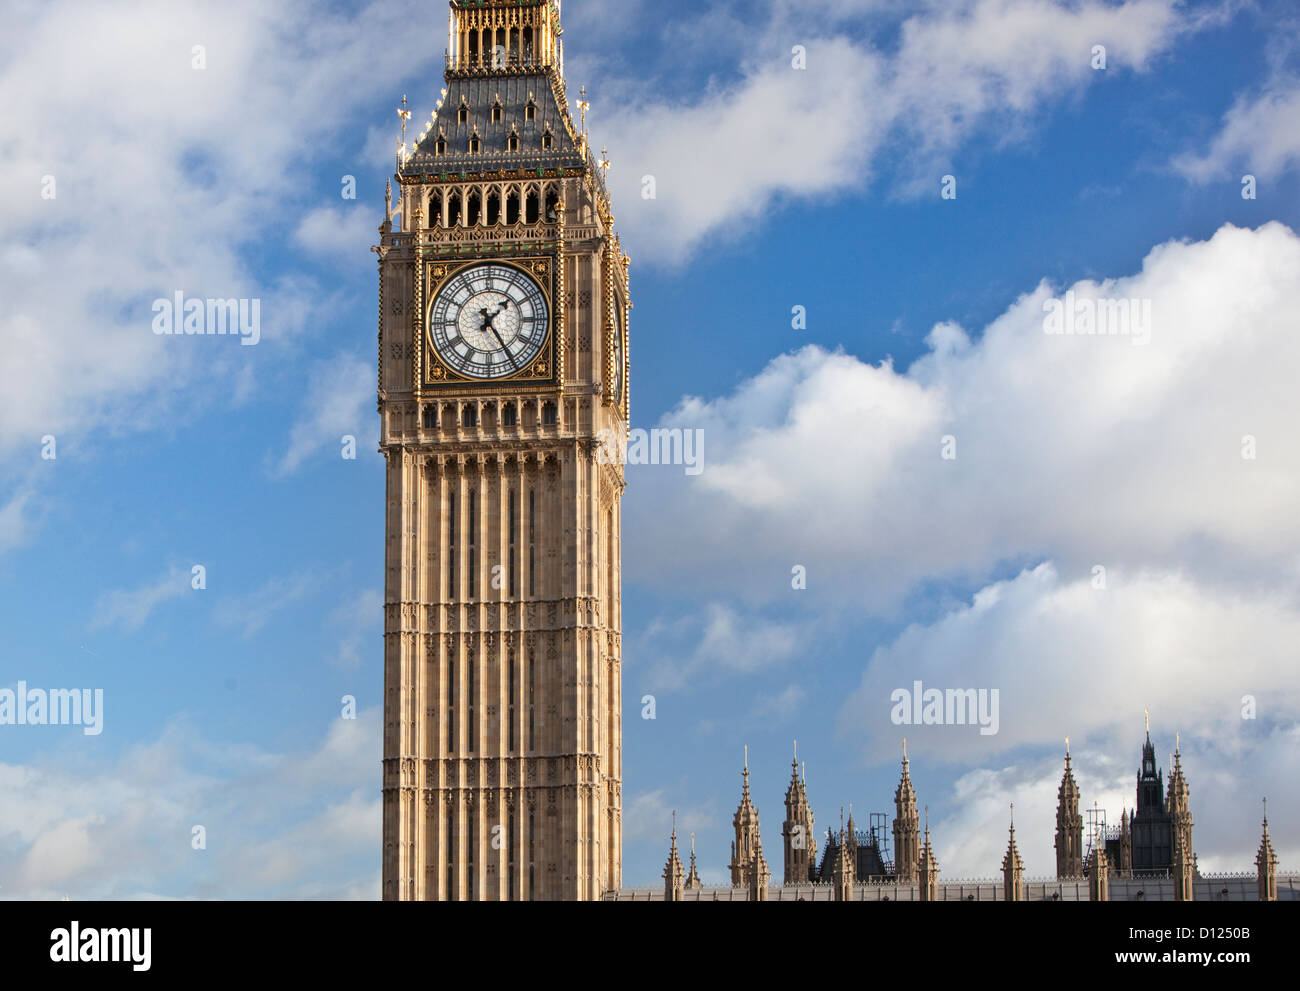 Elizabeth Tower (aka Big Ben) at the north end of the Palace of Westminster, London, England, UK. - Stock Image